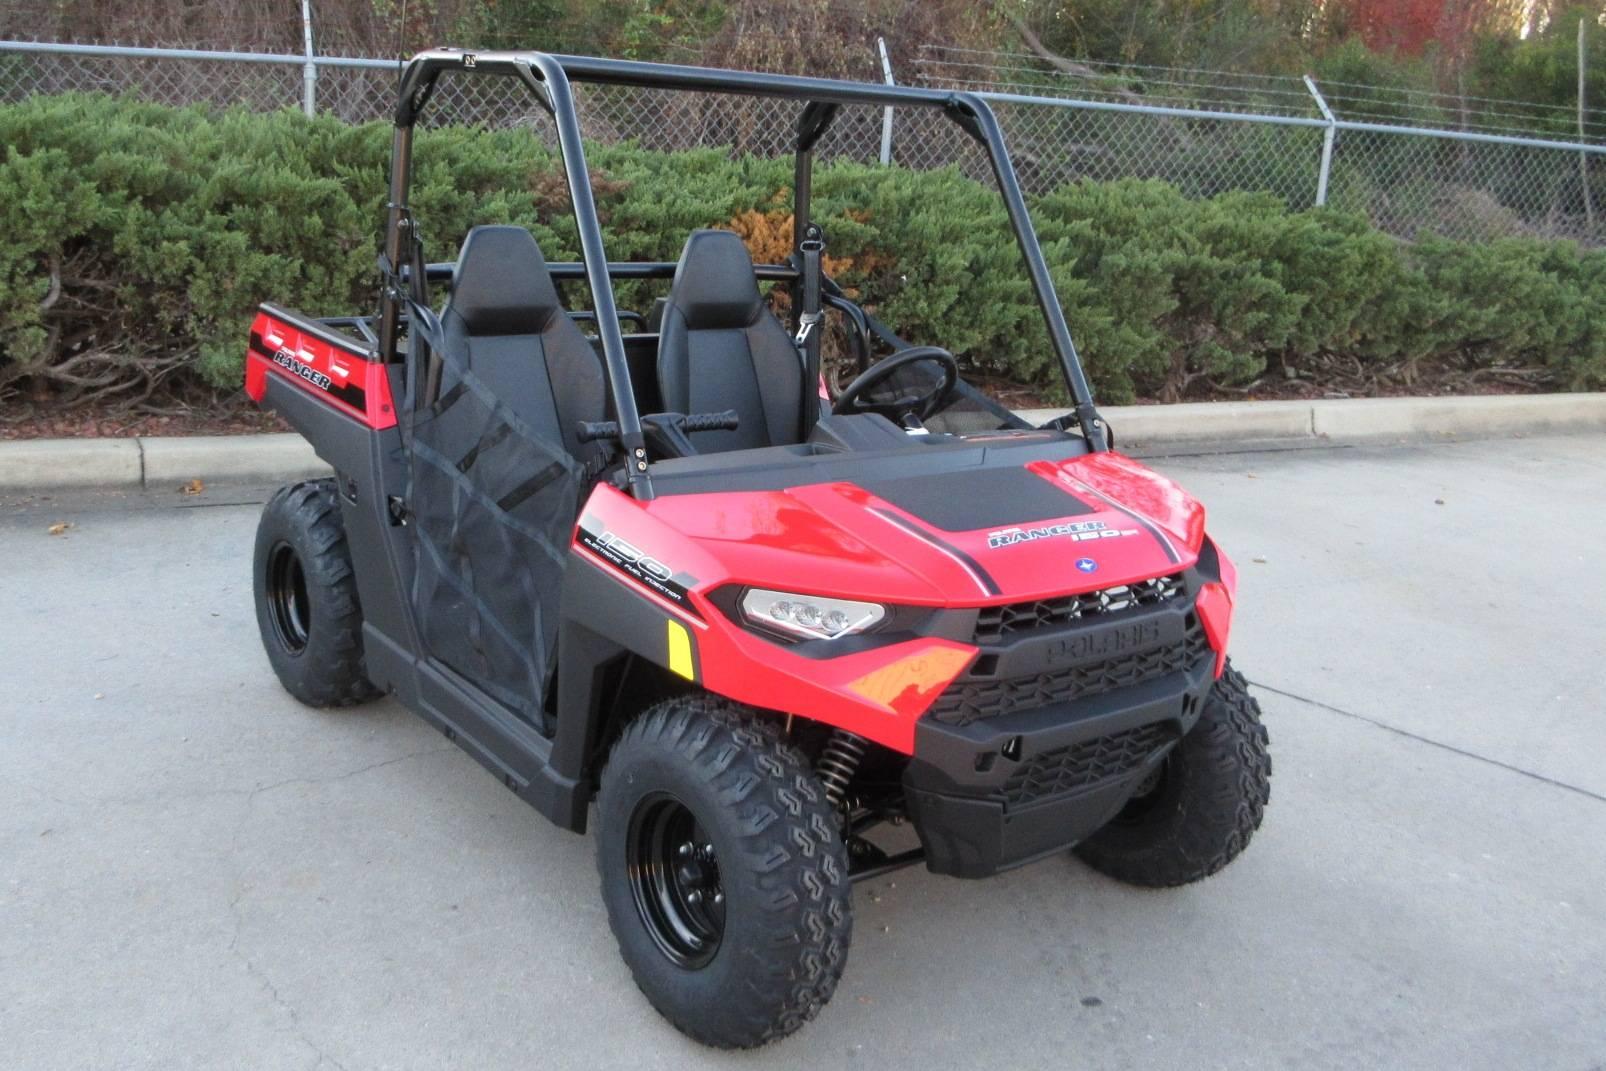 2019 Polaris Ranger 150 EFI in Sumter, South Carolina - Photo 5